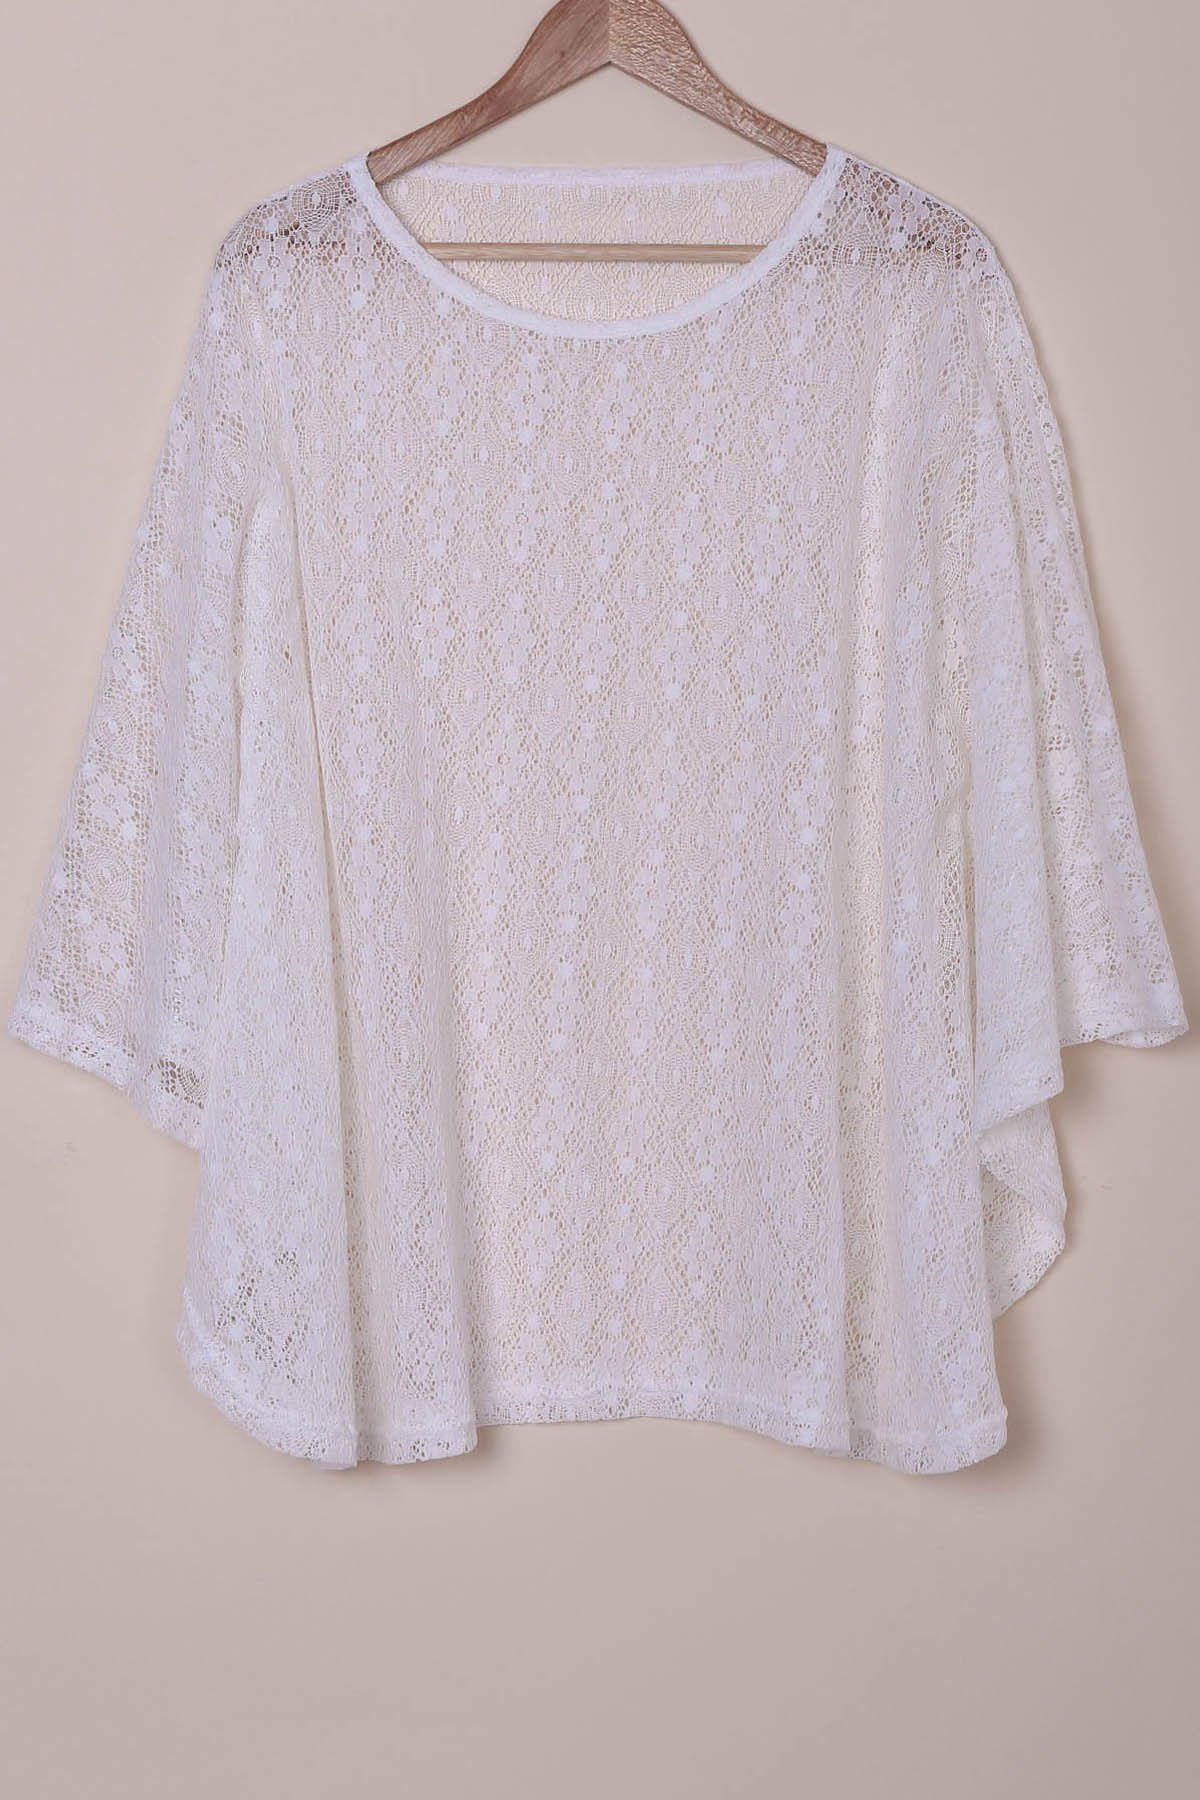 Sexy Scoop Neck Long Sleeve Hollow Out Women's Lace Cover-Up - WHITE ONE SIZE(FIT SIZE XS TO M)